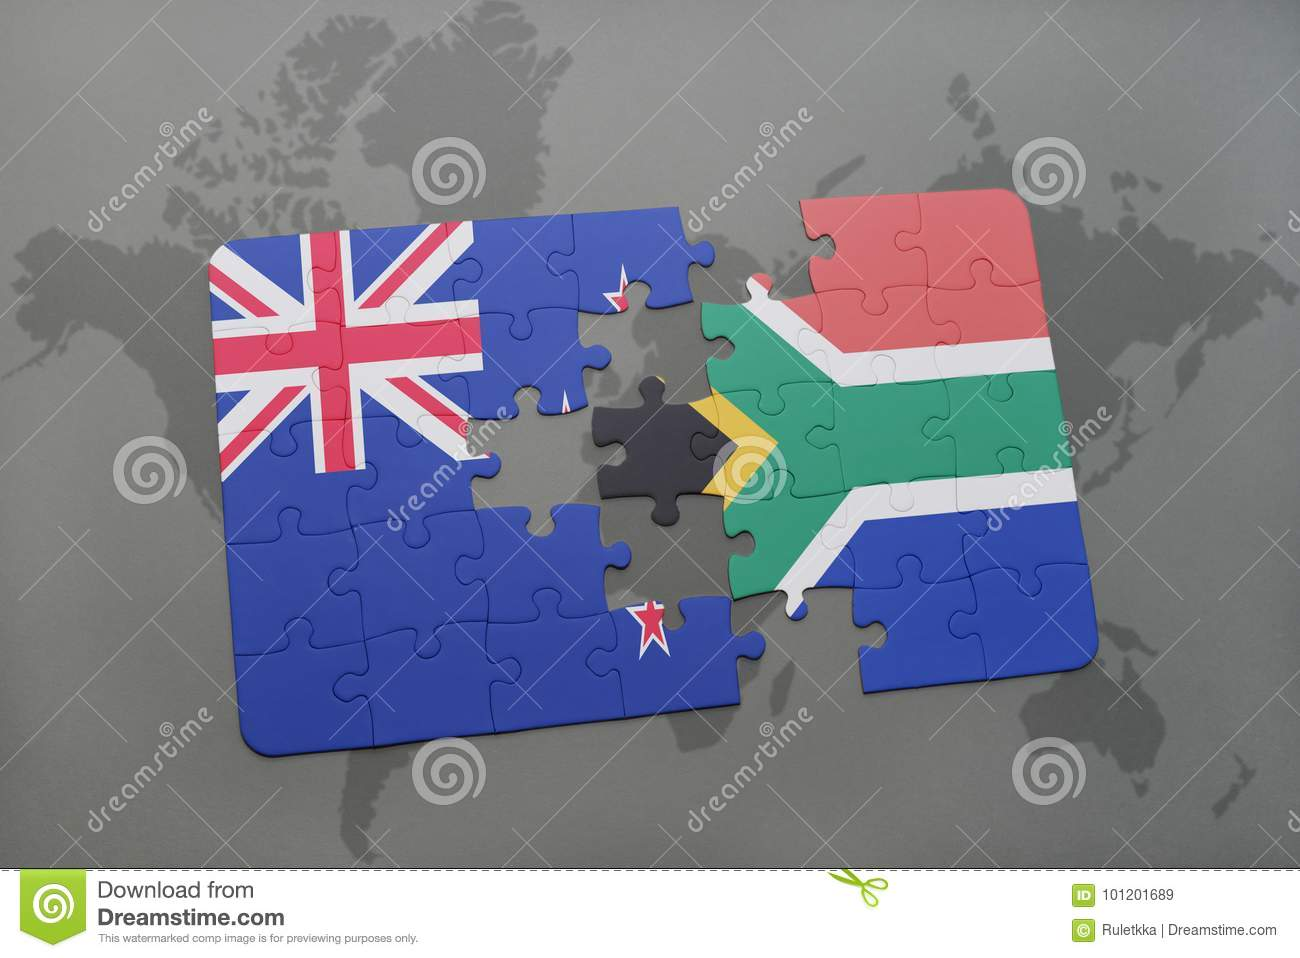 Puzzle With The National Flag Of New Zealand And South Africa On A